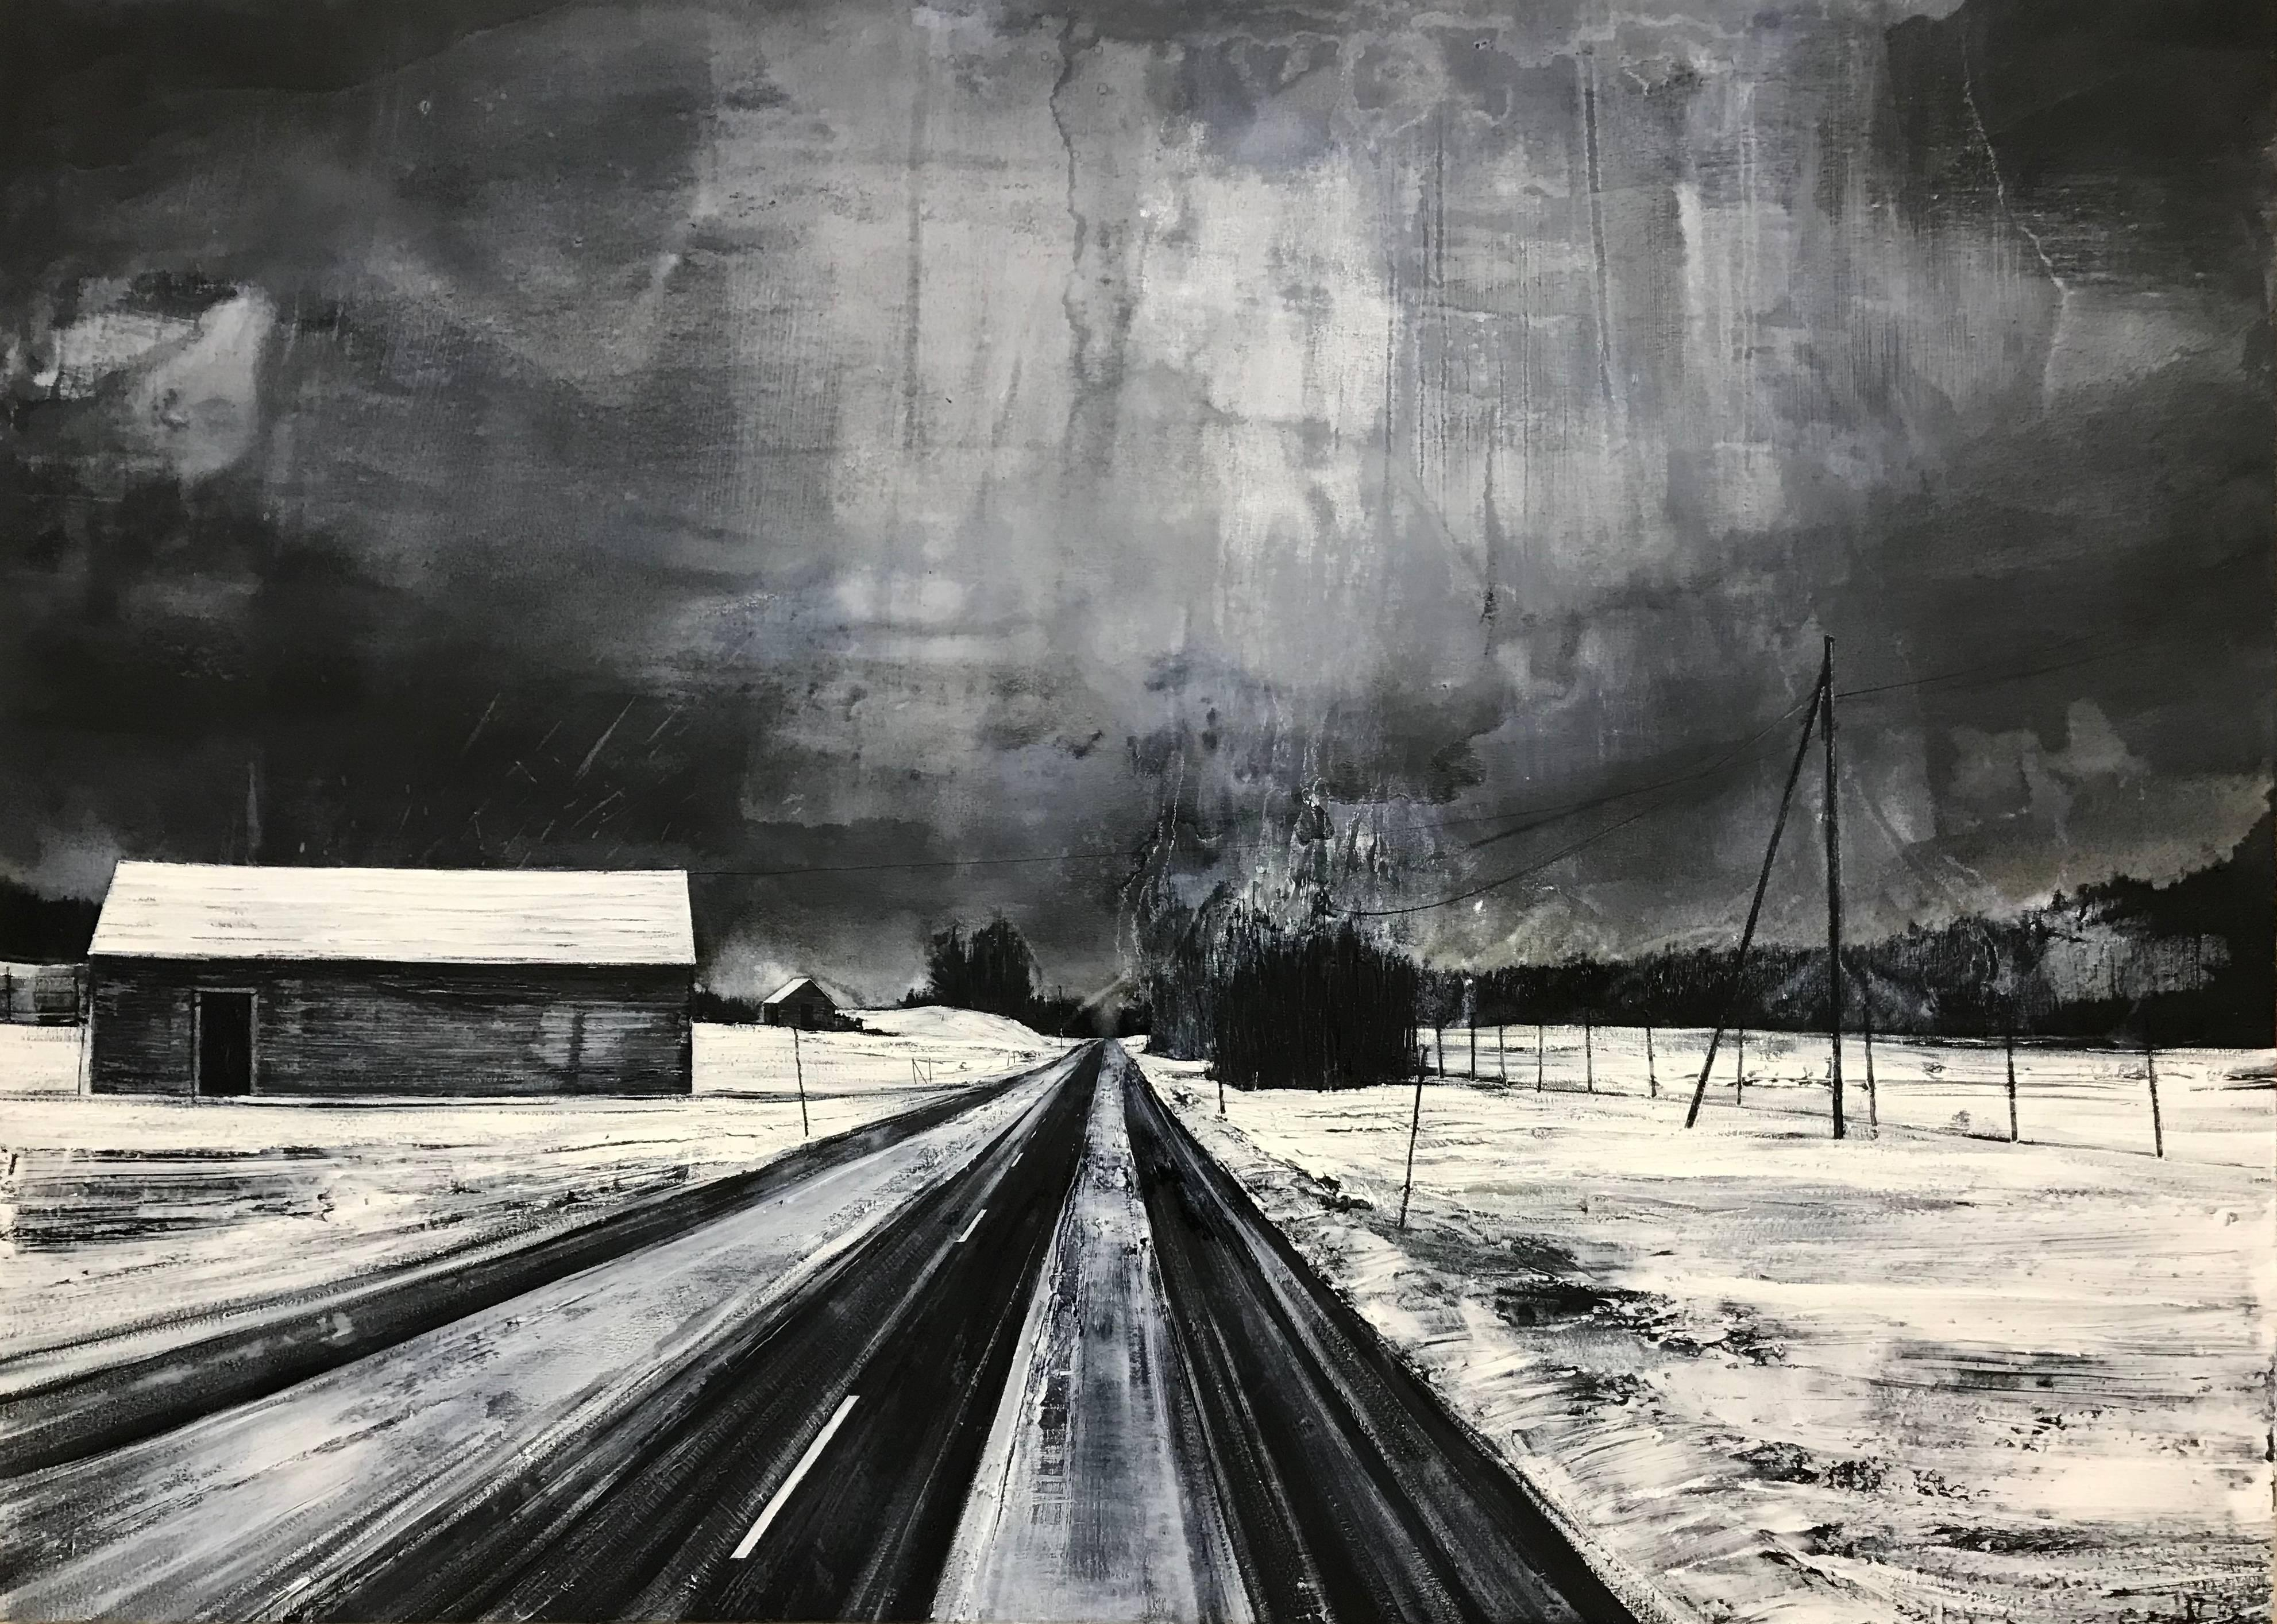 Black & White Atmospheric Landscape Painting by Contemporary British Artist